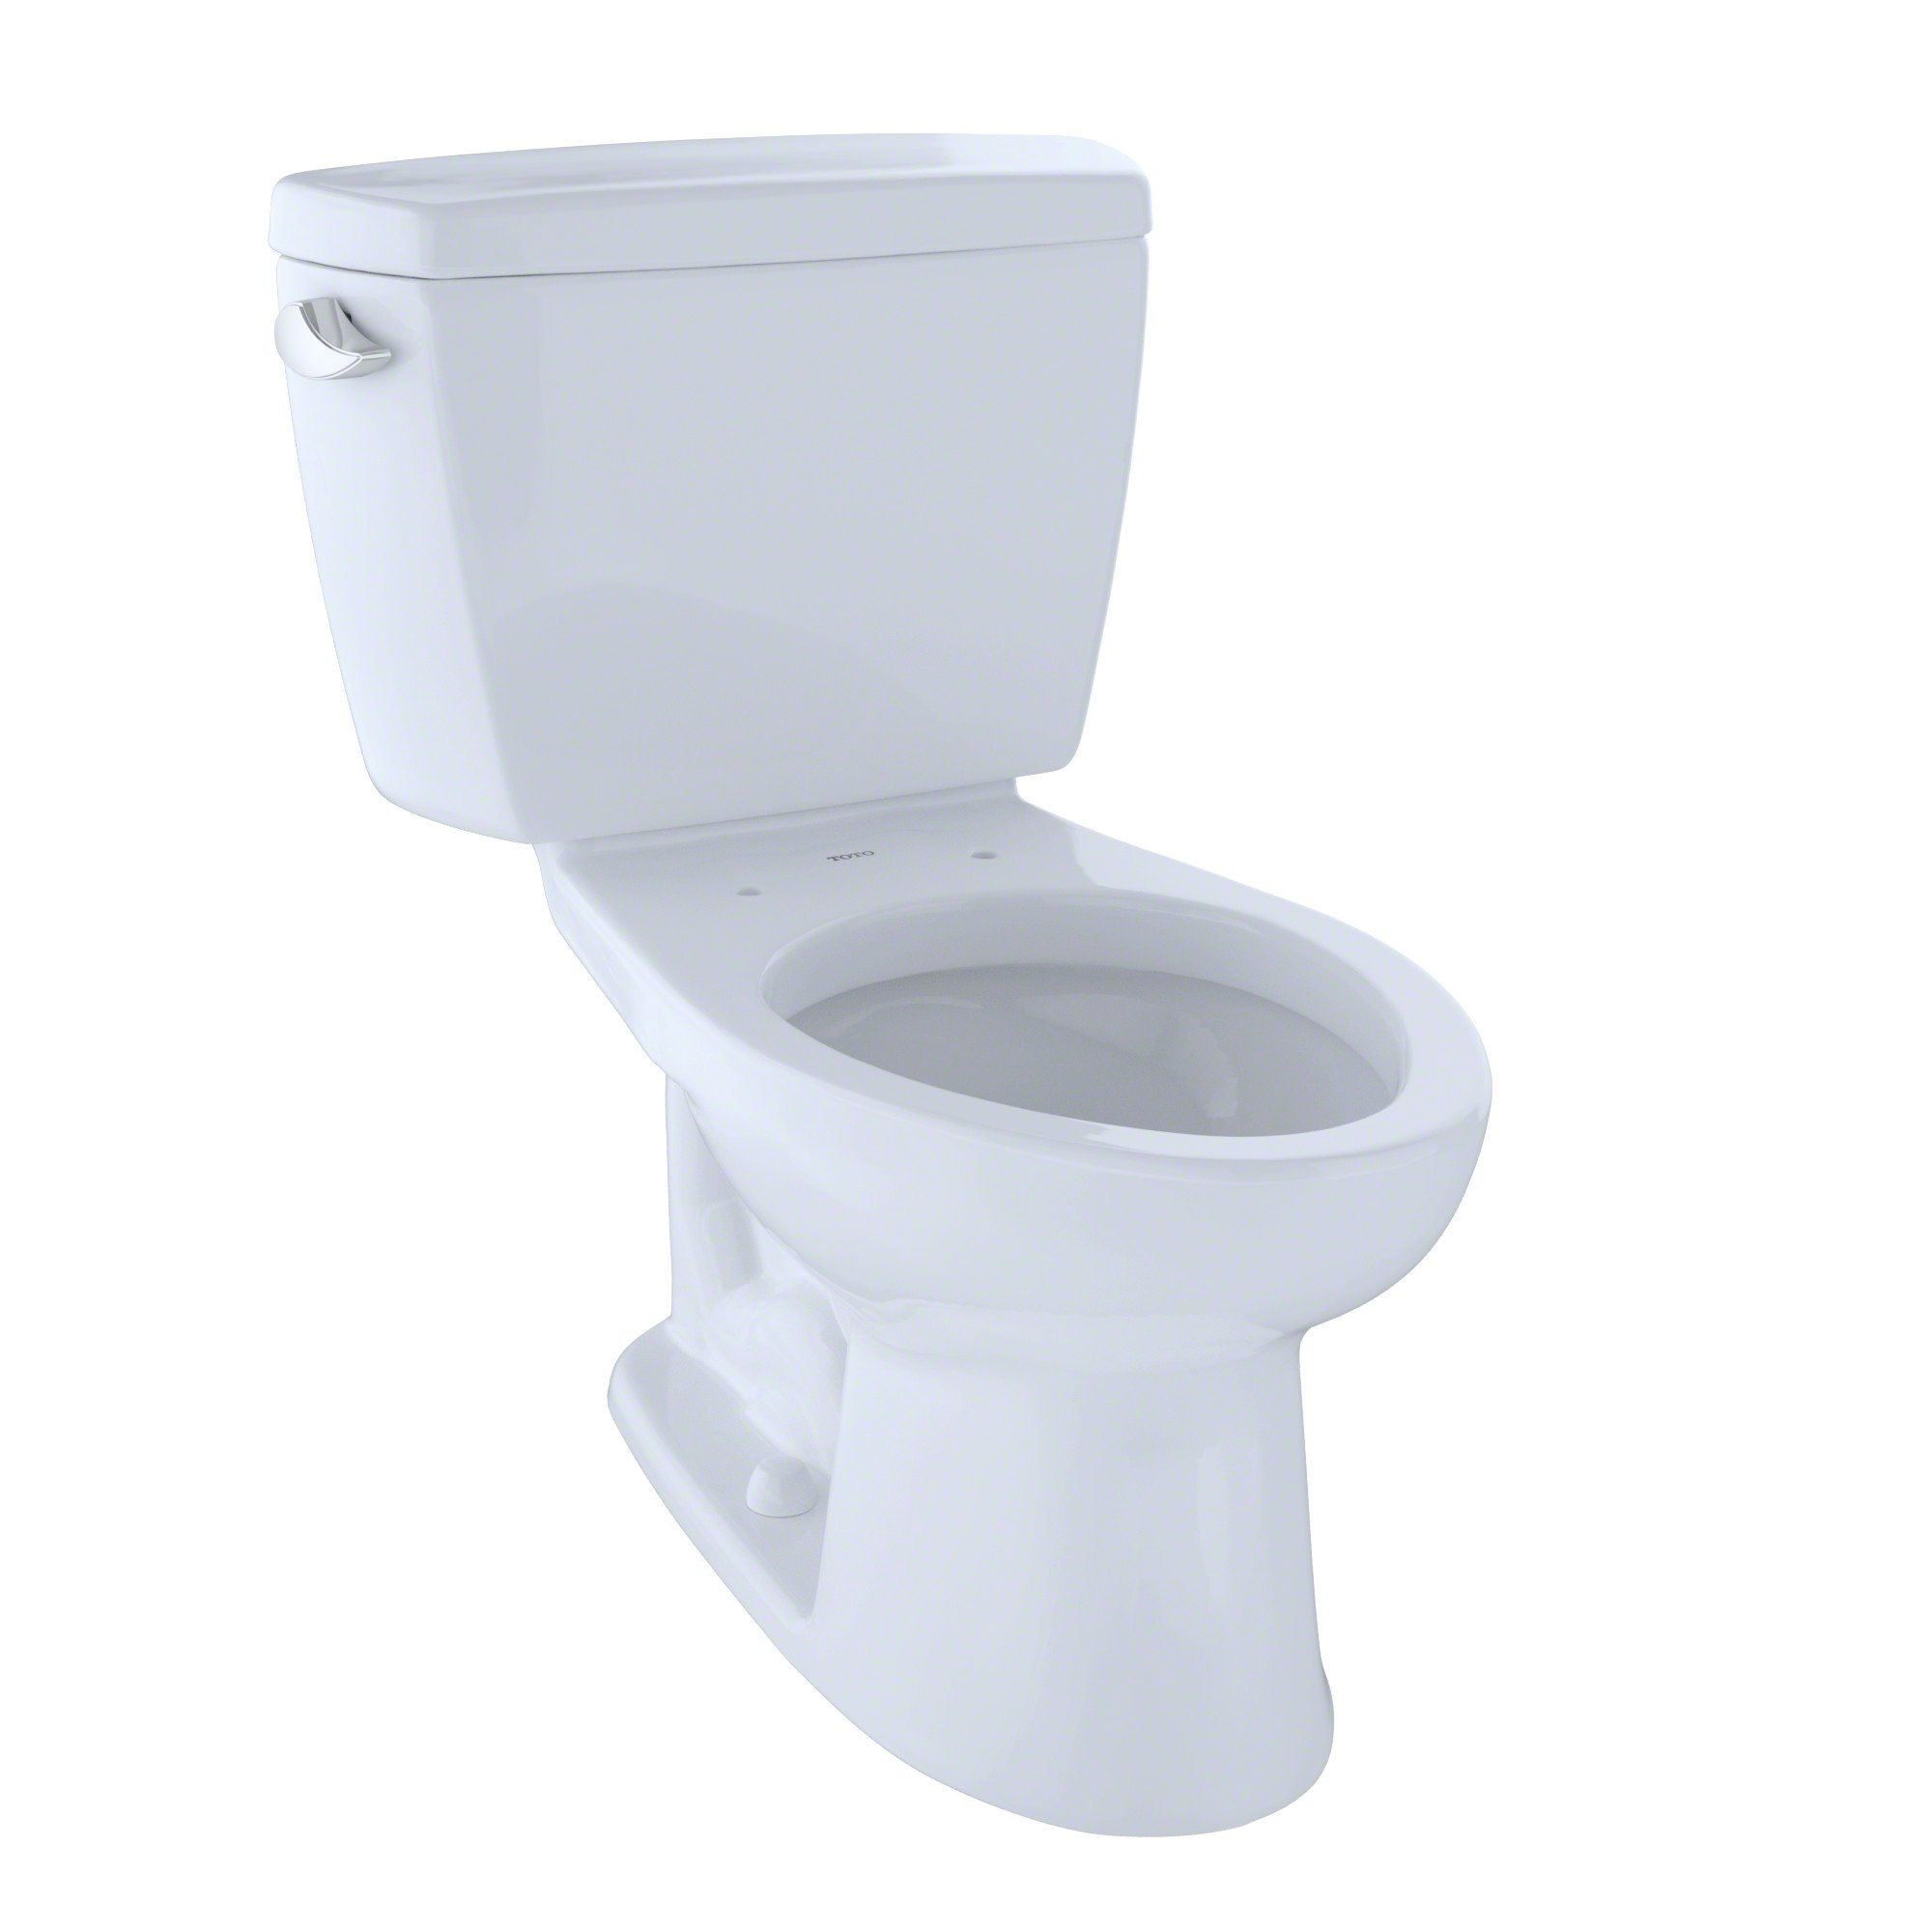 Toto CST744SF.10#01 CST744SF.10No.01 Drake Two-Piece Toilet, 1.6-GPF Cotton by TOTO